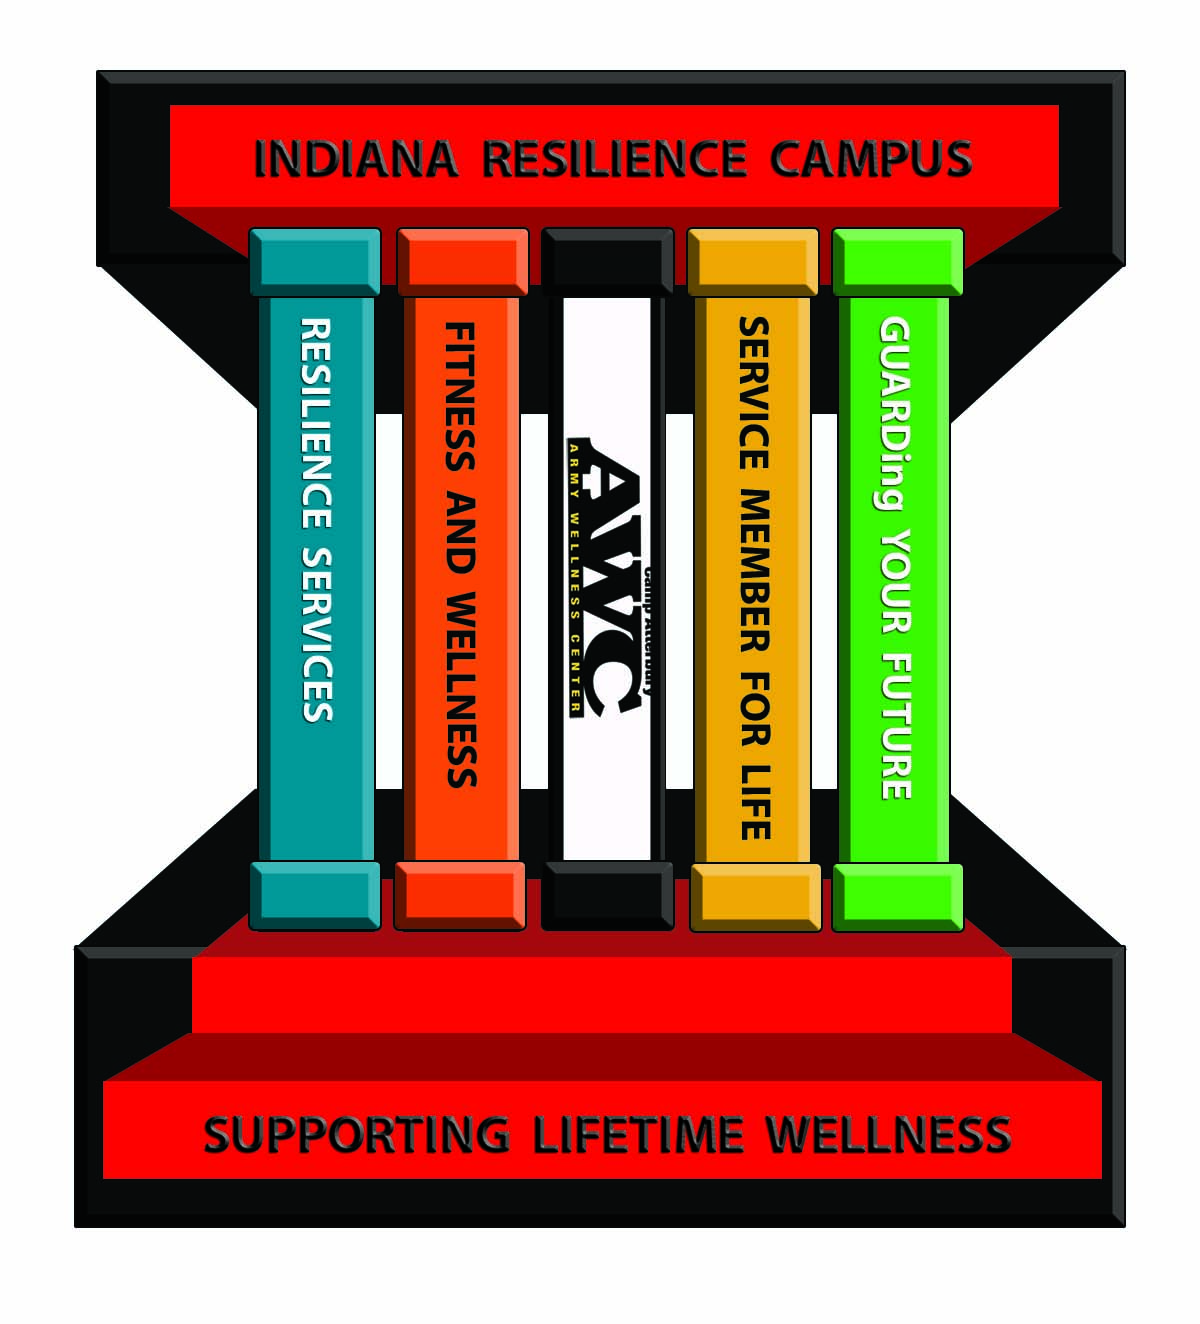 Indiana Resilience Campus pillars of wellness- drawn image